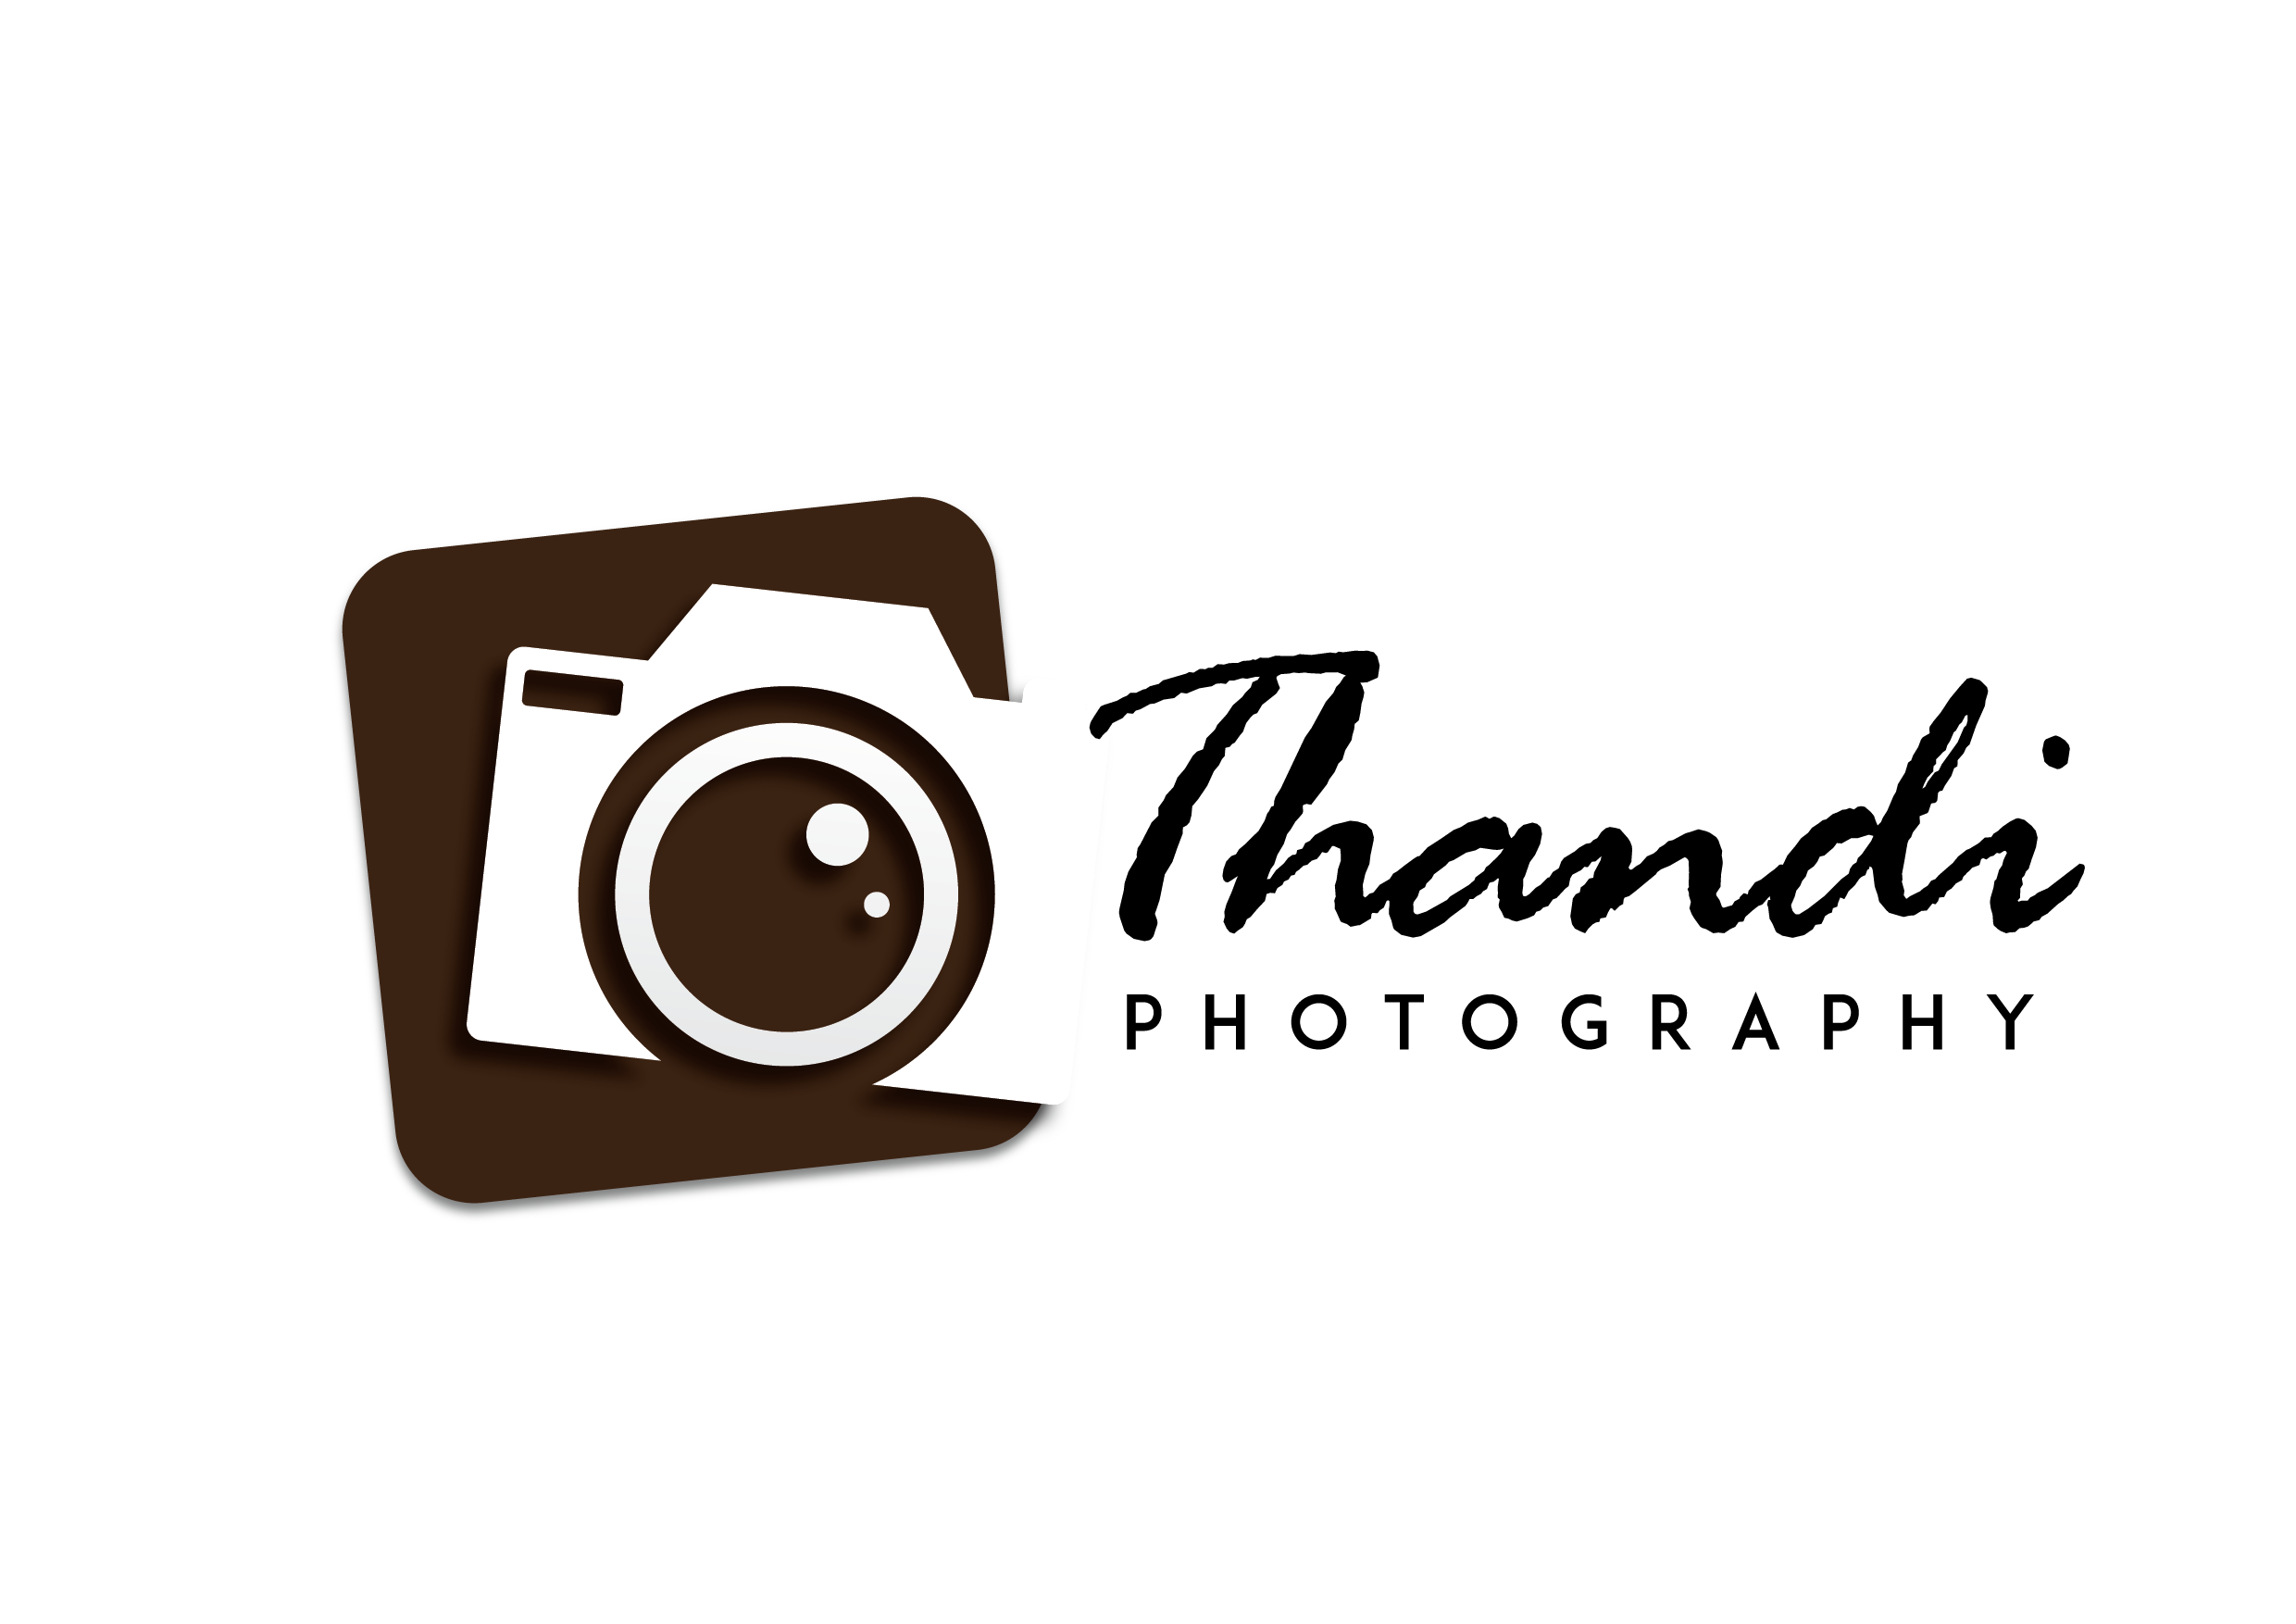 Photography camera logo design png. Thandi visible online thandiphotography